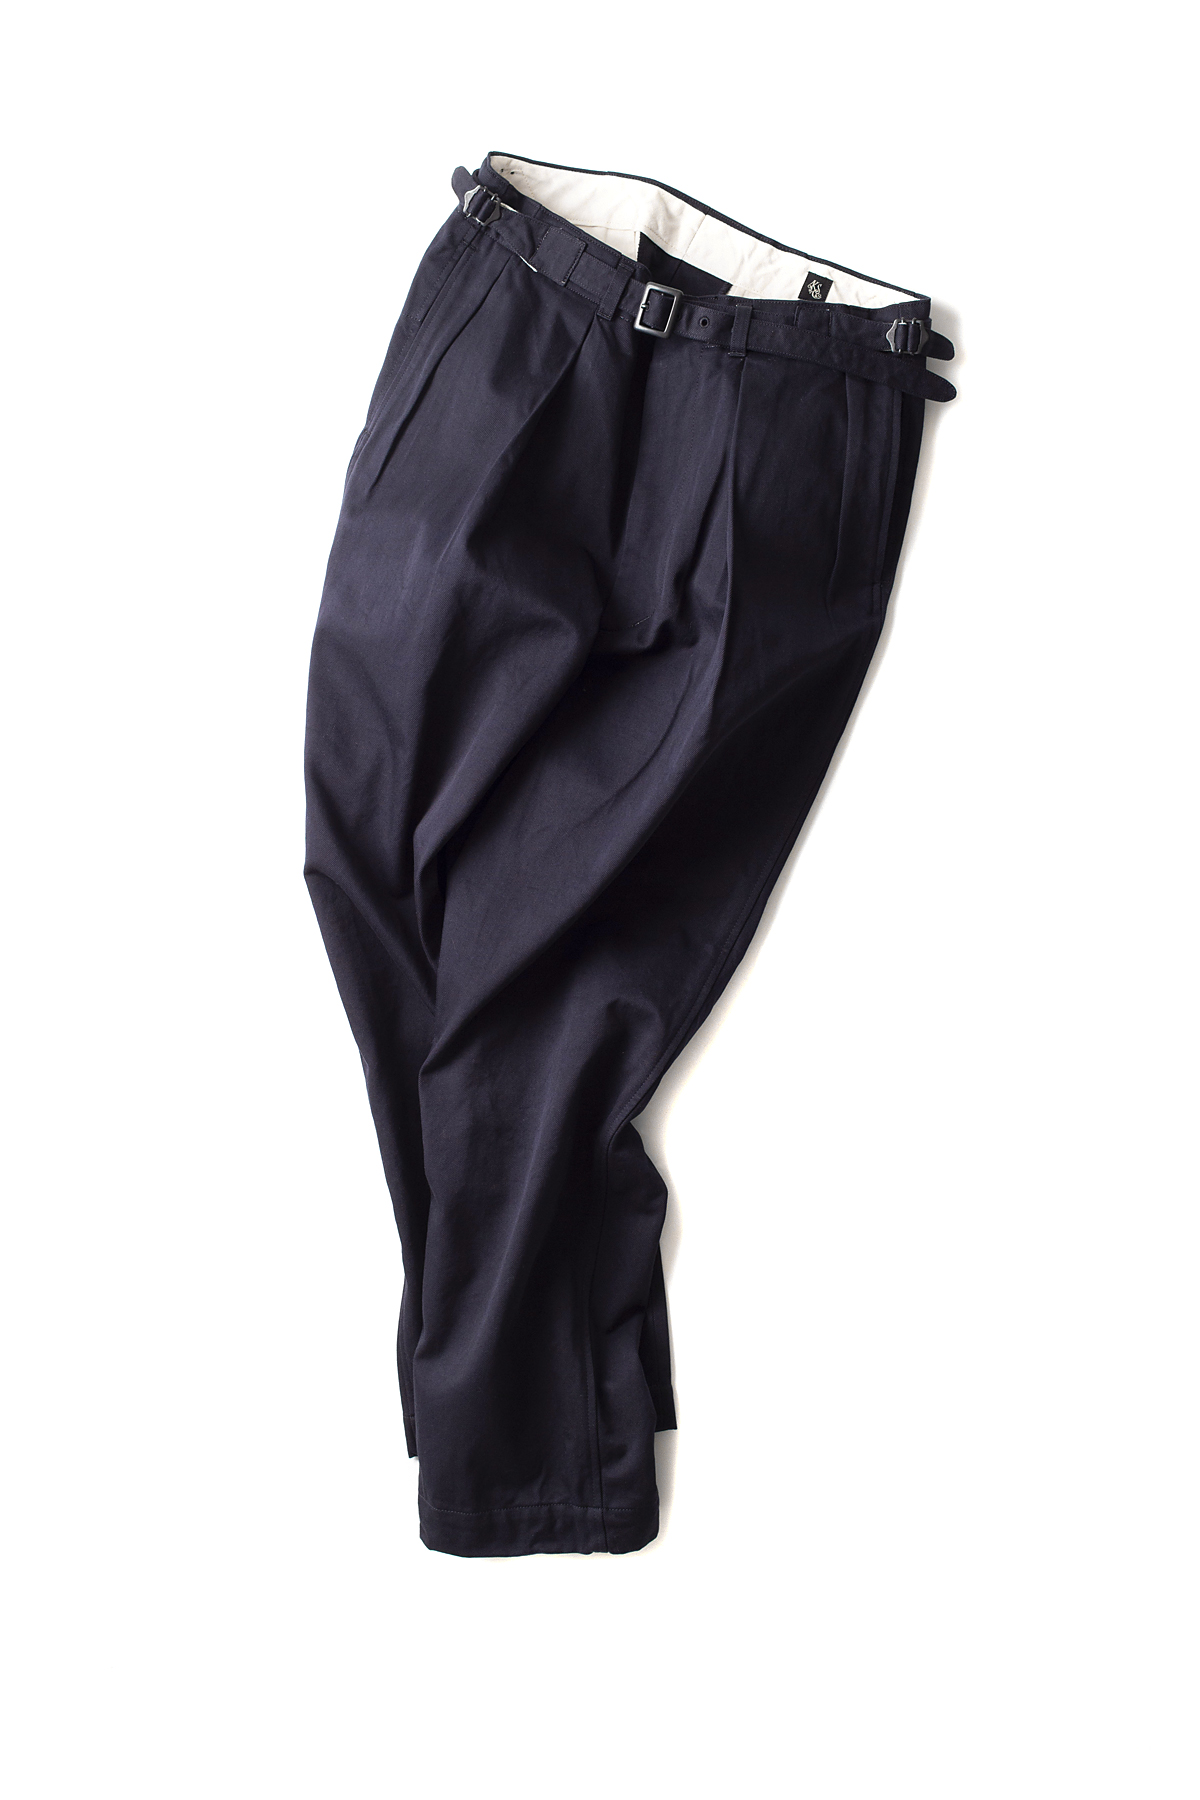 Kaptain Sunshine : Tapered Gurkha Trousers (Navy)